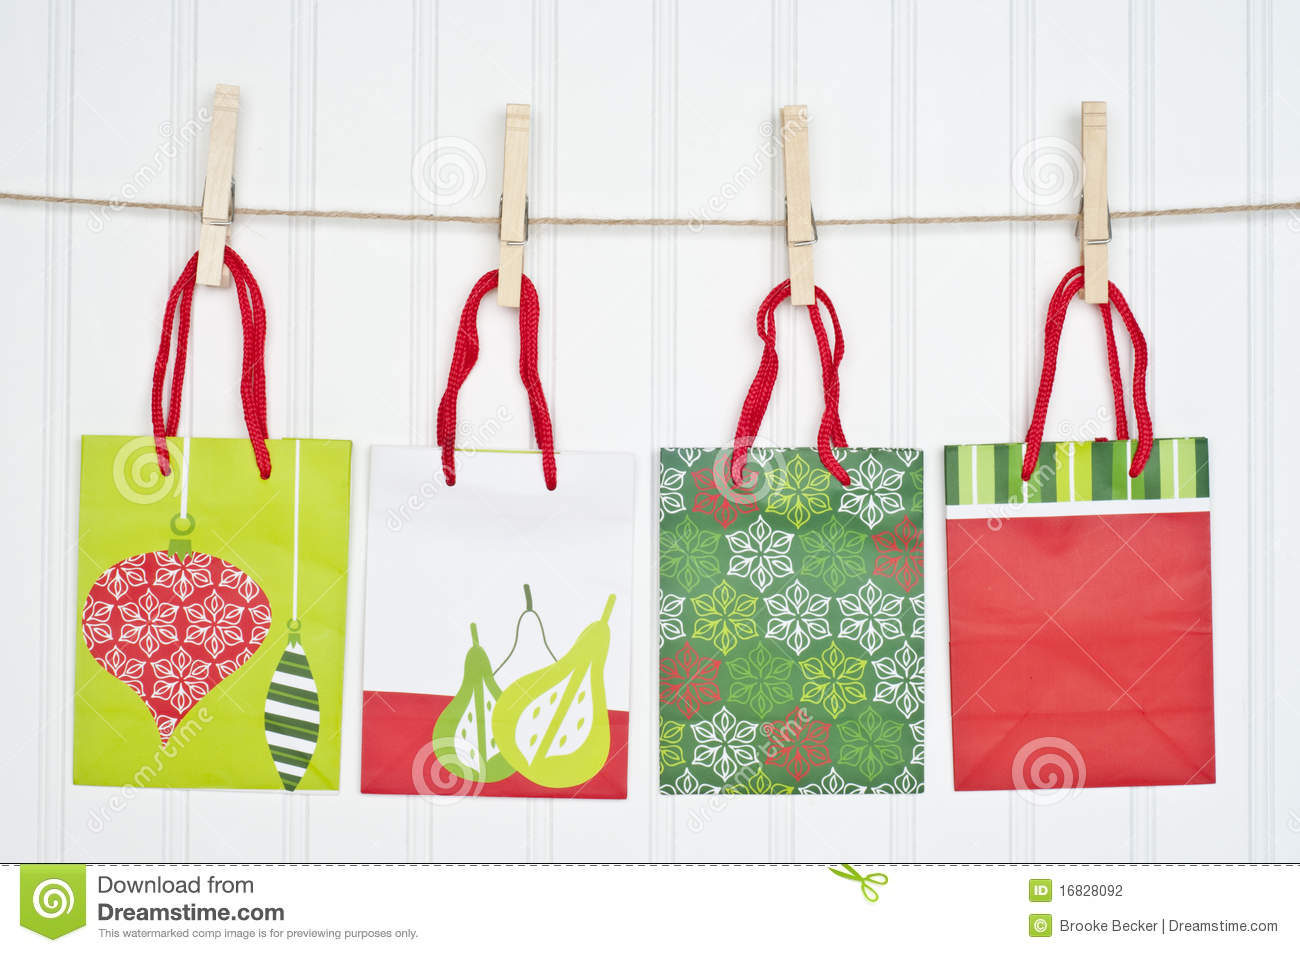 Holiday Gift Bags on a Clothesline  sc 1 st  Dreamstime.com & Holiday Gift Bags On A Clothesline Stock Photo - Image of finance ...